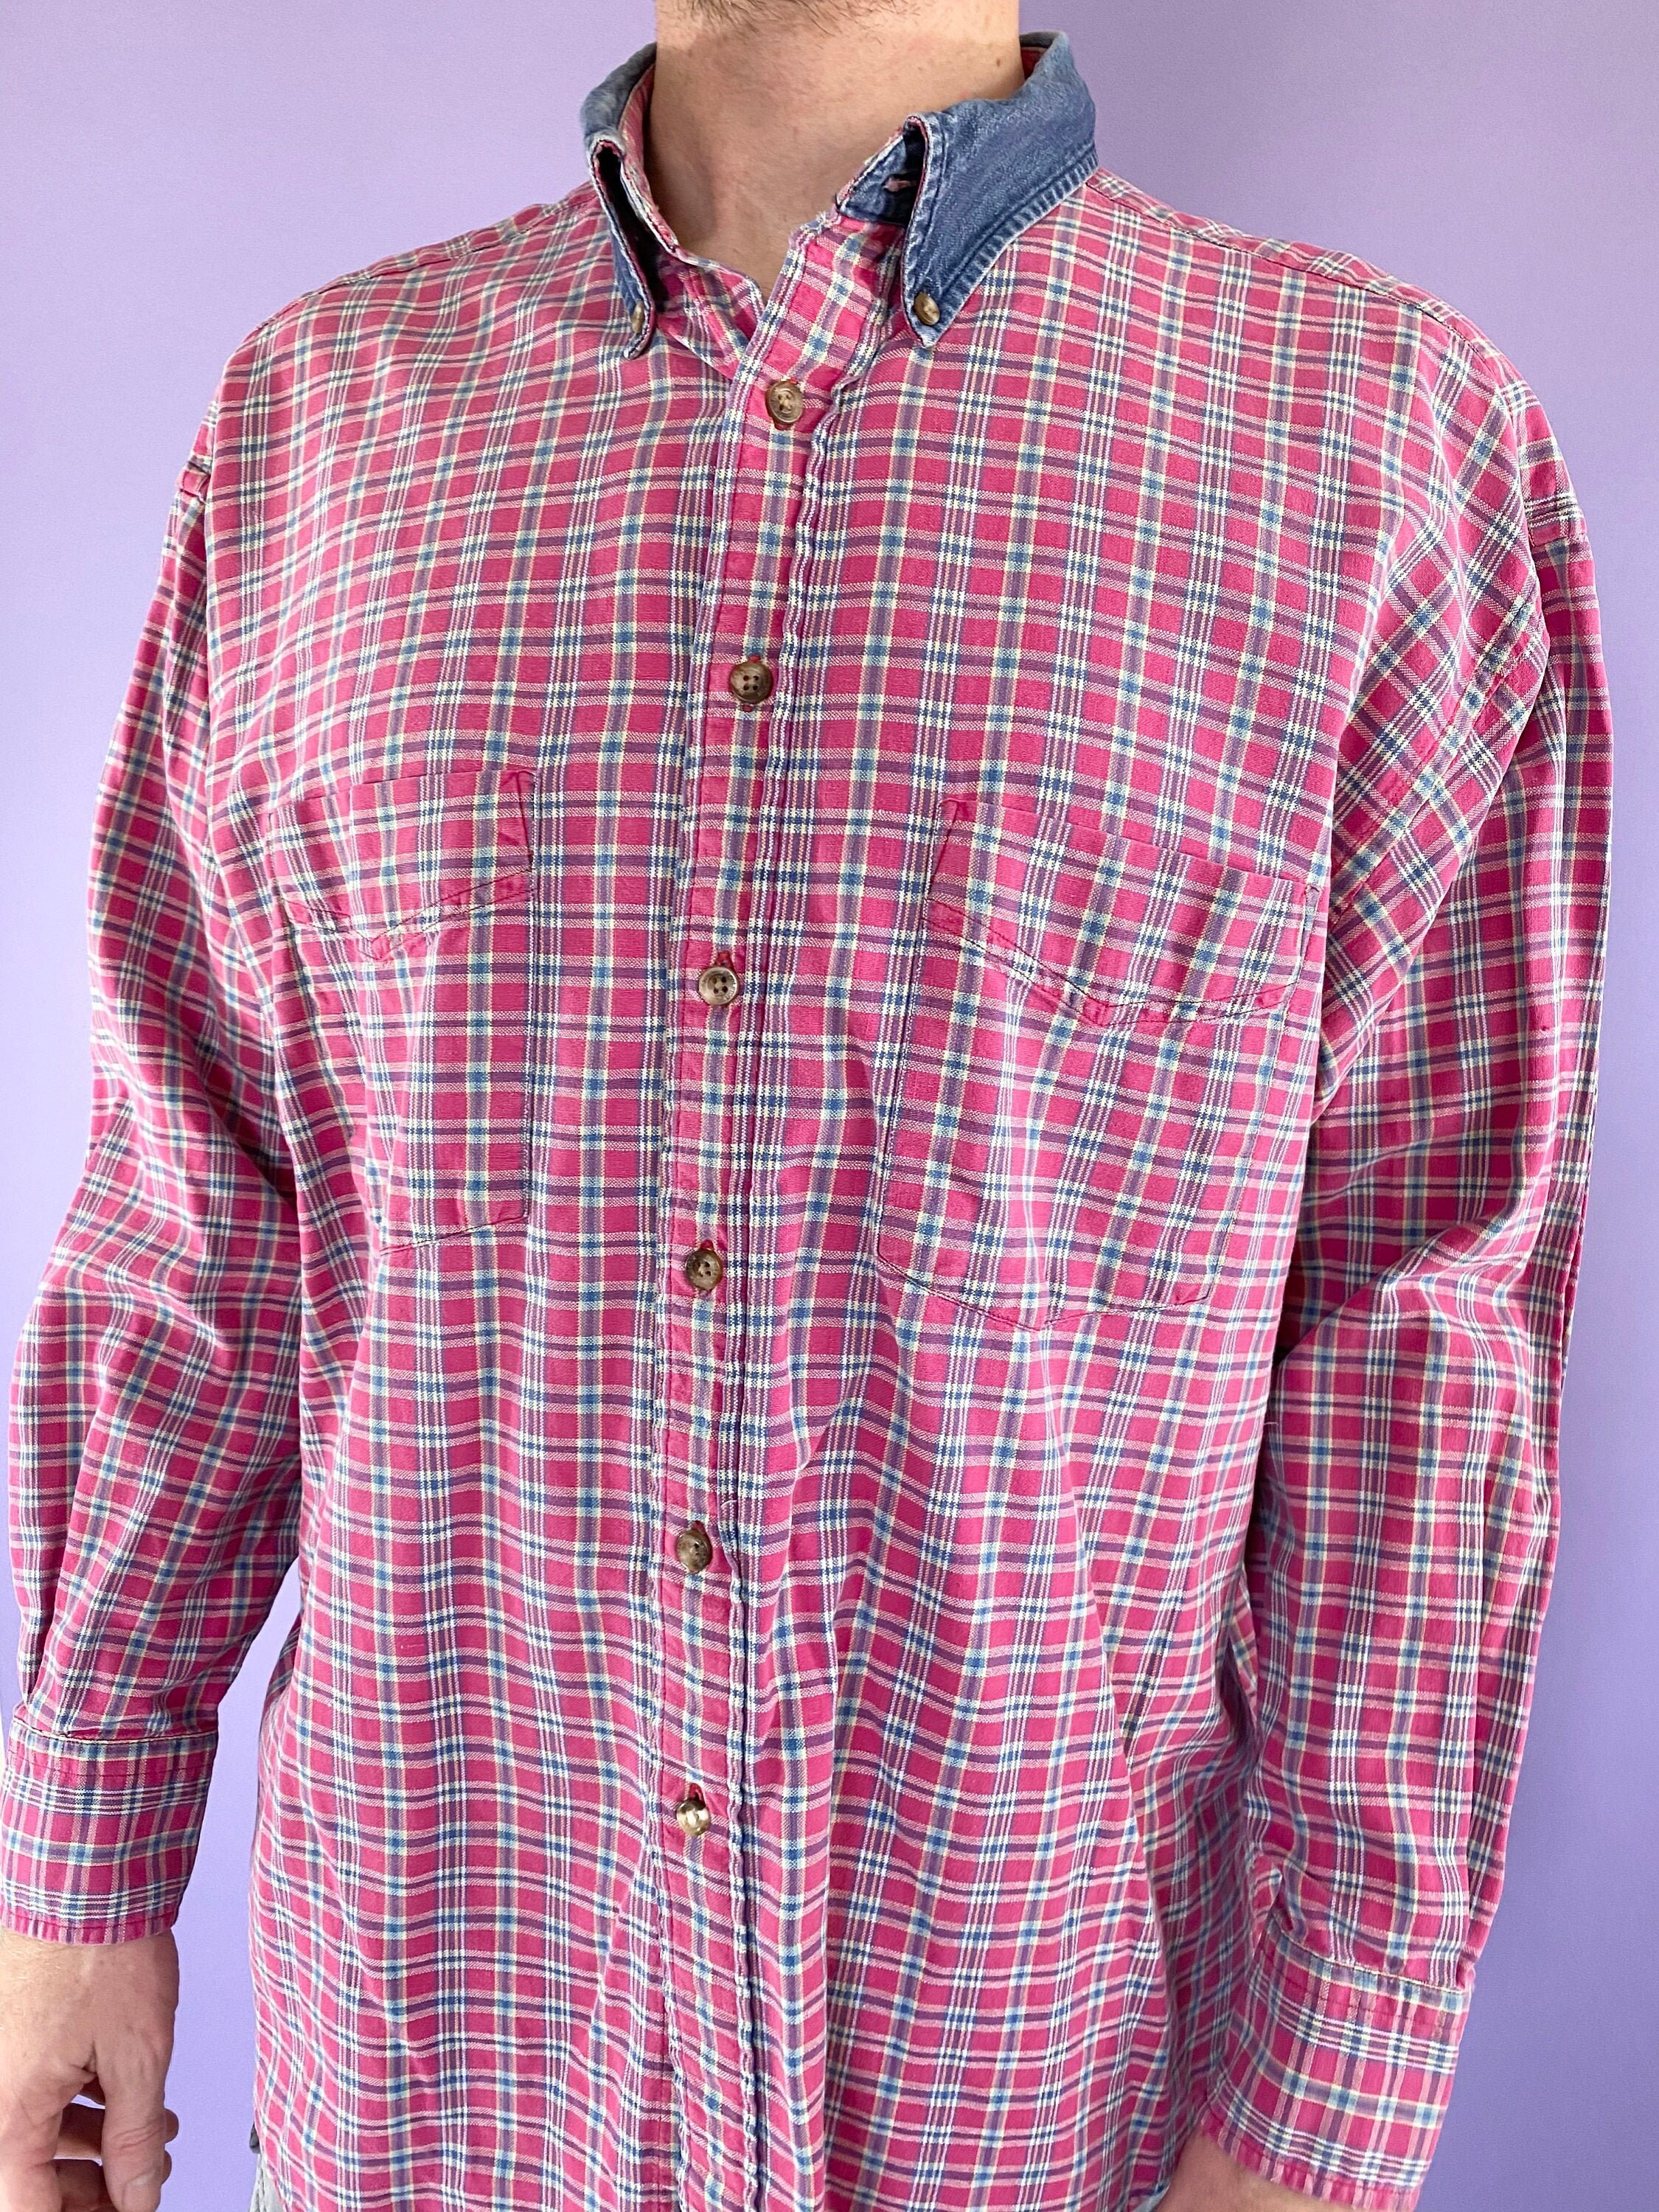 80s Tops, Shirts, T-shirts, Blouse   90s T-shirts Vintage 80S 1980S 90S 1990S Distressed Casual Pendleton Plaid Long Sleeve Denim Collared Flannel Cotton Button Up Shirt $17.50 AT vintagedancer.com